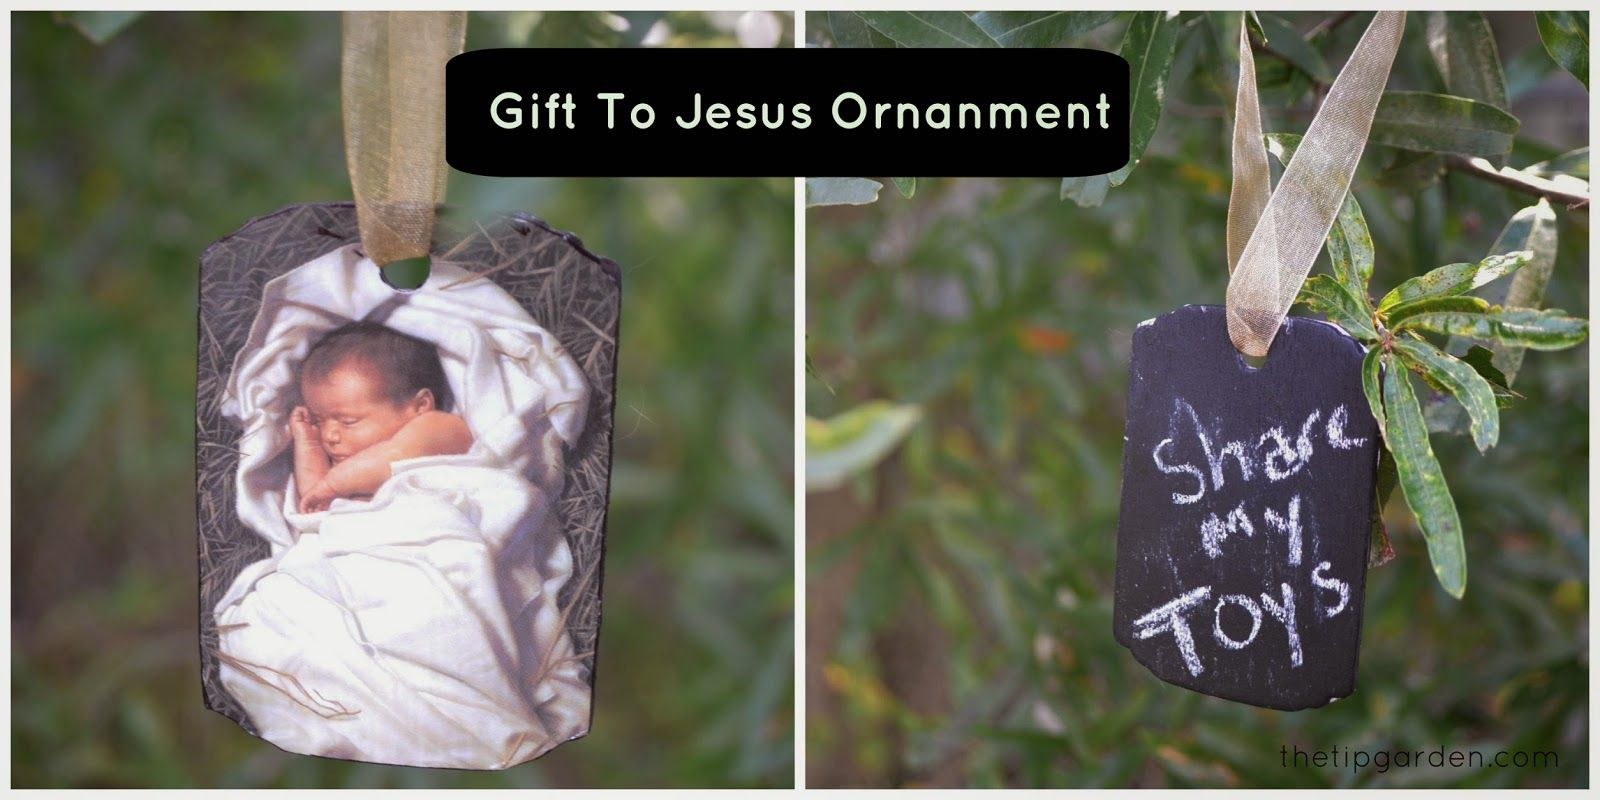 Gift To Jesus Ornament: every year write down what your gift will be.